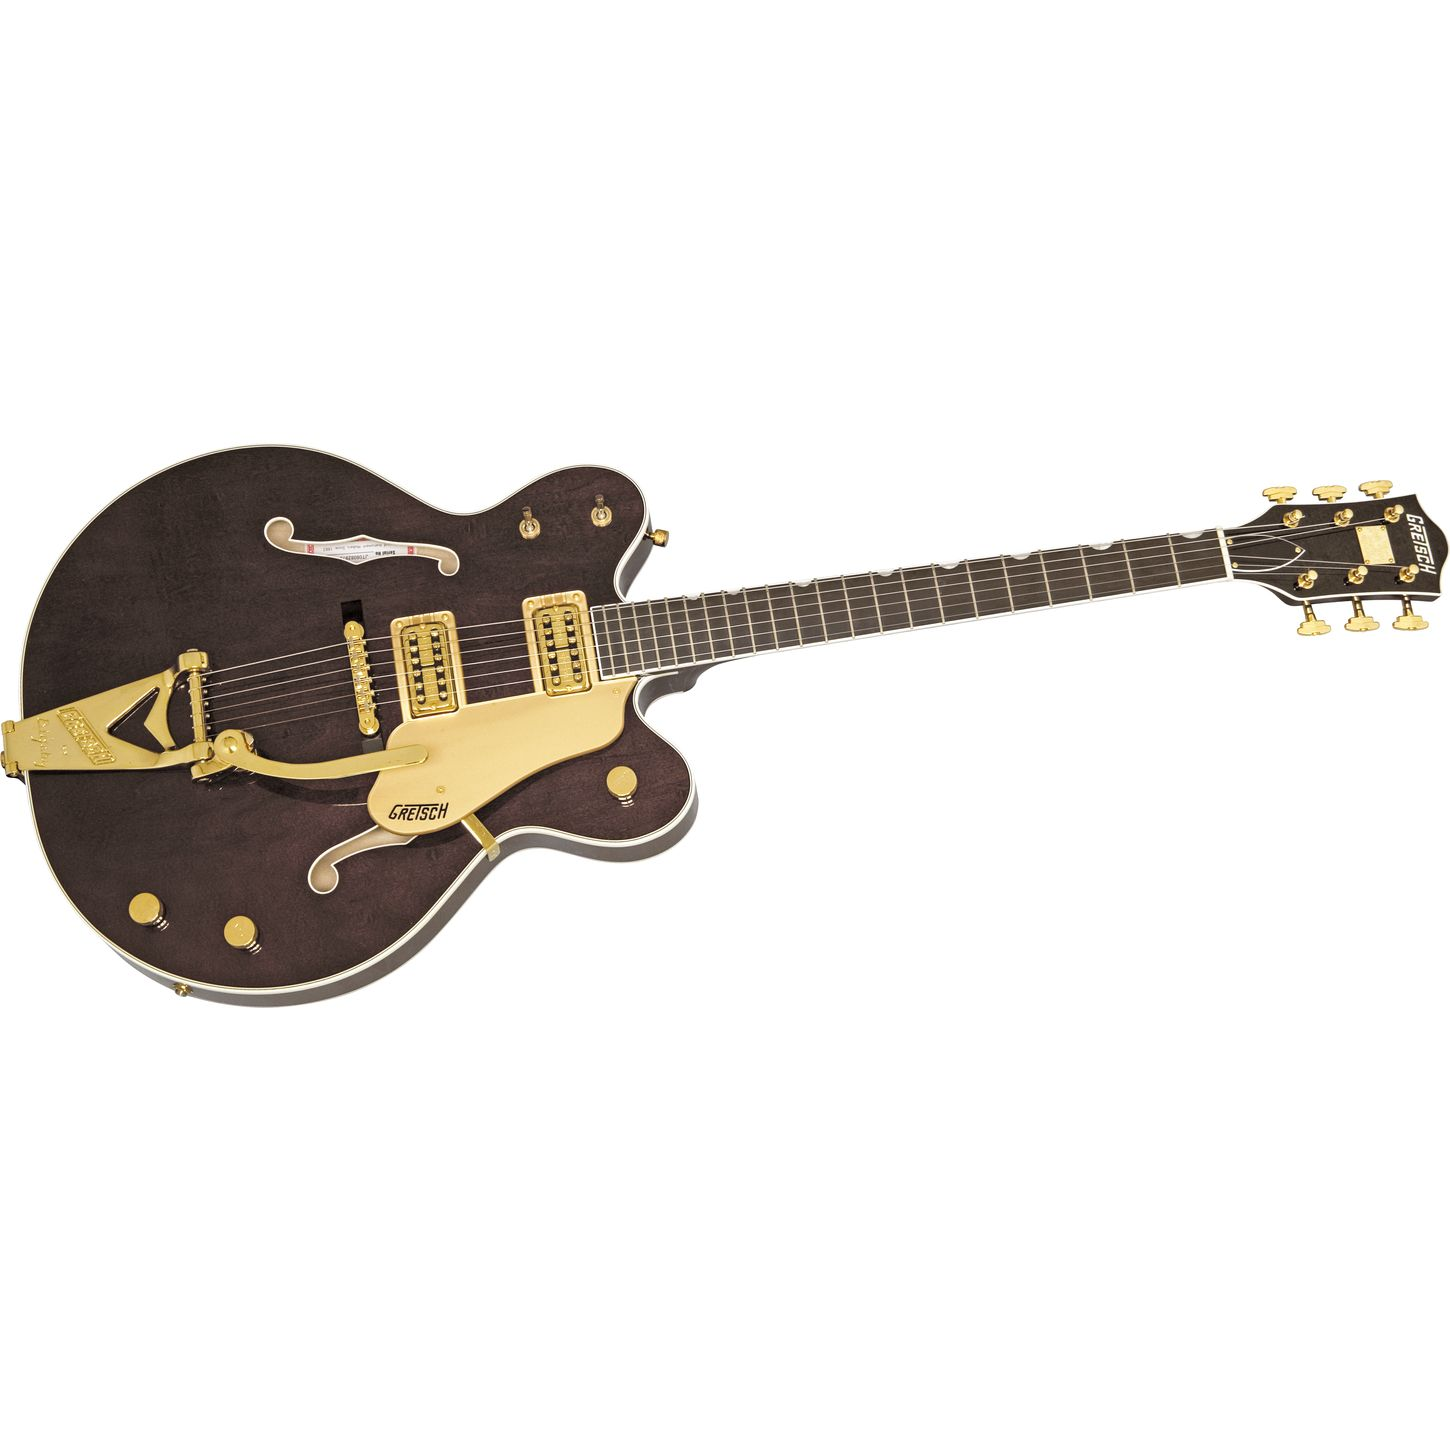 Country Electric Guitars : gretsch guitars g6122ii chet atkins country gentleman electric guitar walnut stain musician 39 s ~ Vivirlamusica.com Haus und Dekorationen